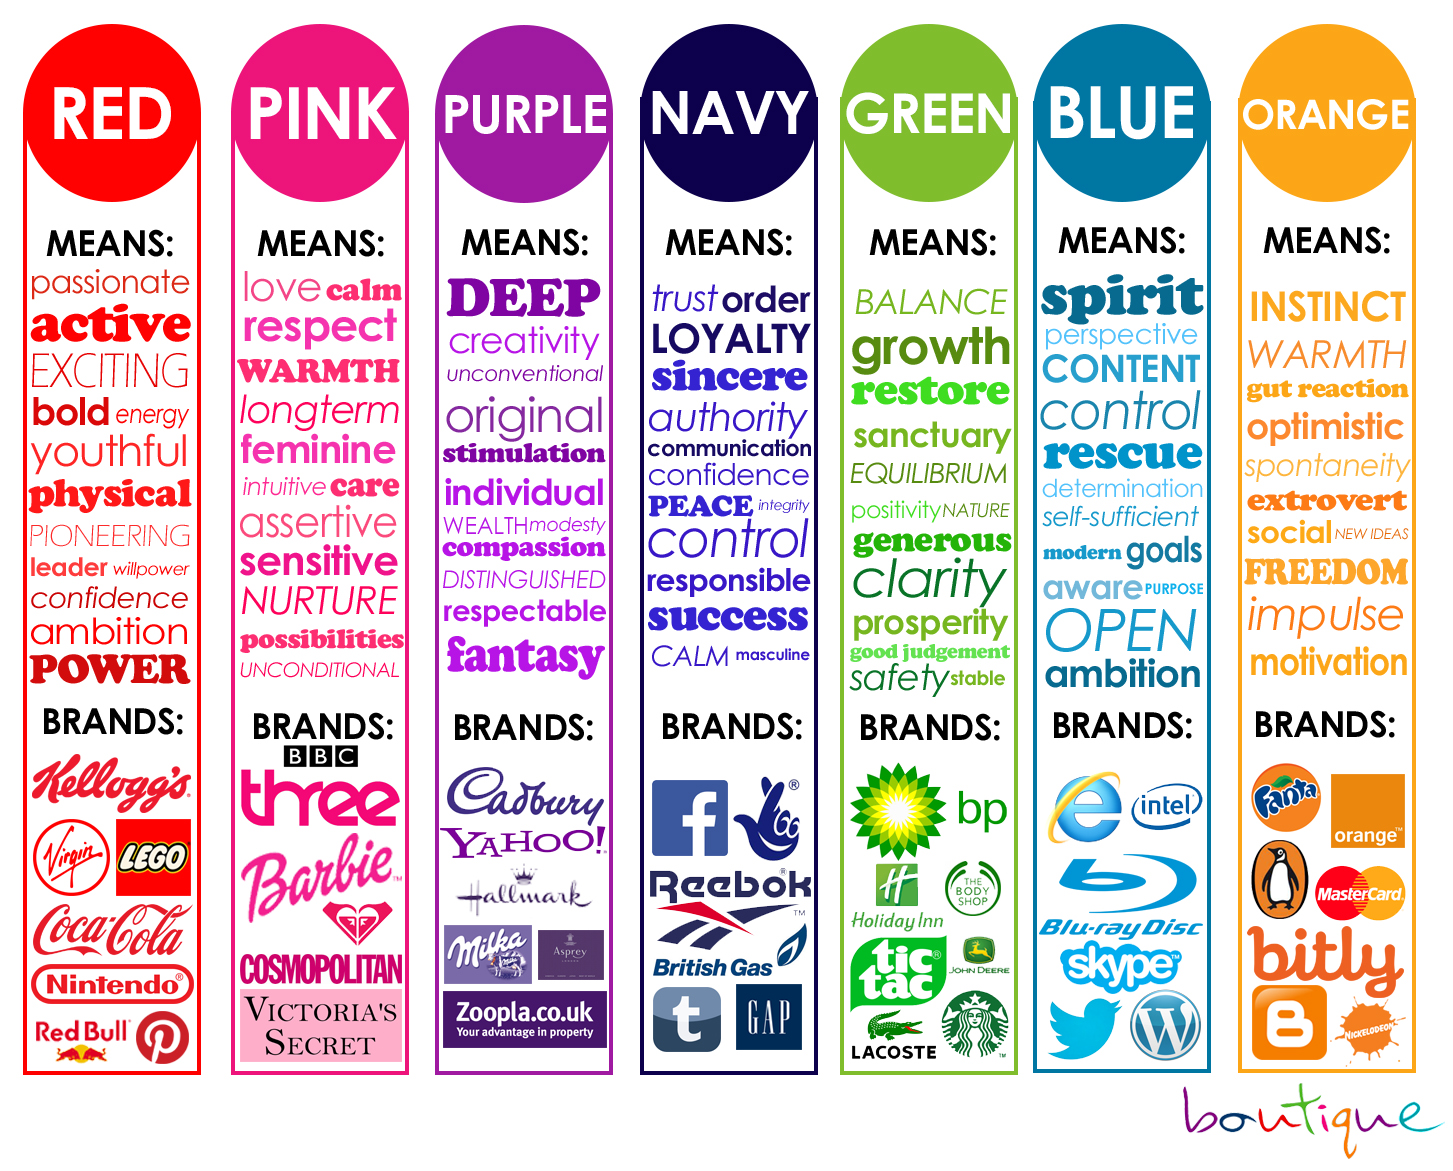 Colours-Mean-Brands1.jpg